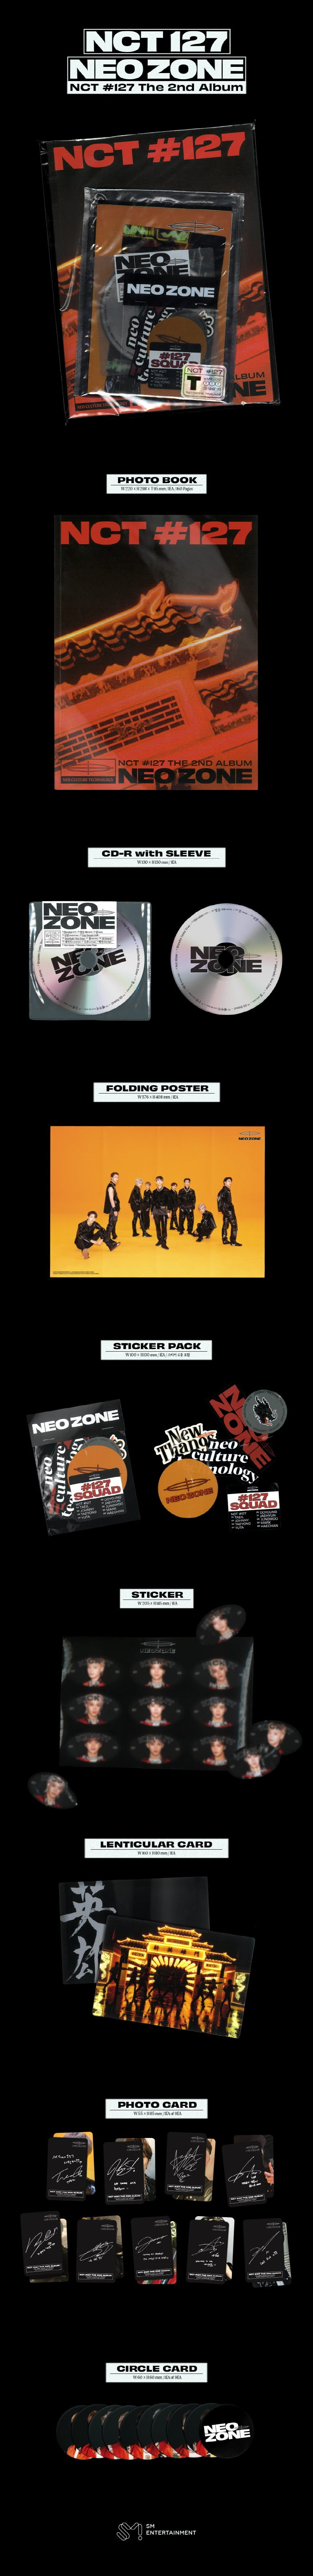 NCT 127 NEO ZONE Version T (NCT127 NEOZONE The 2nd Album) at SOKOLLAB